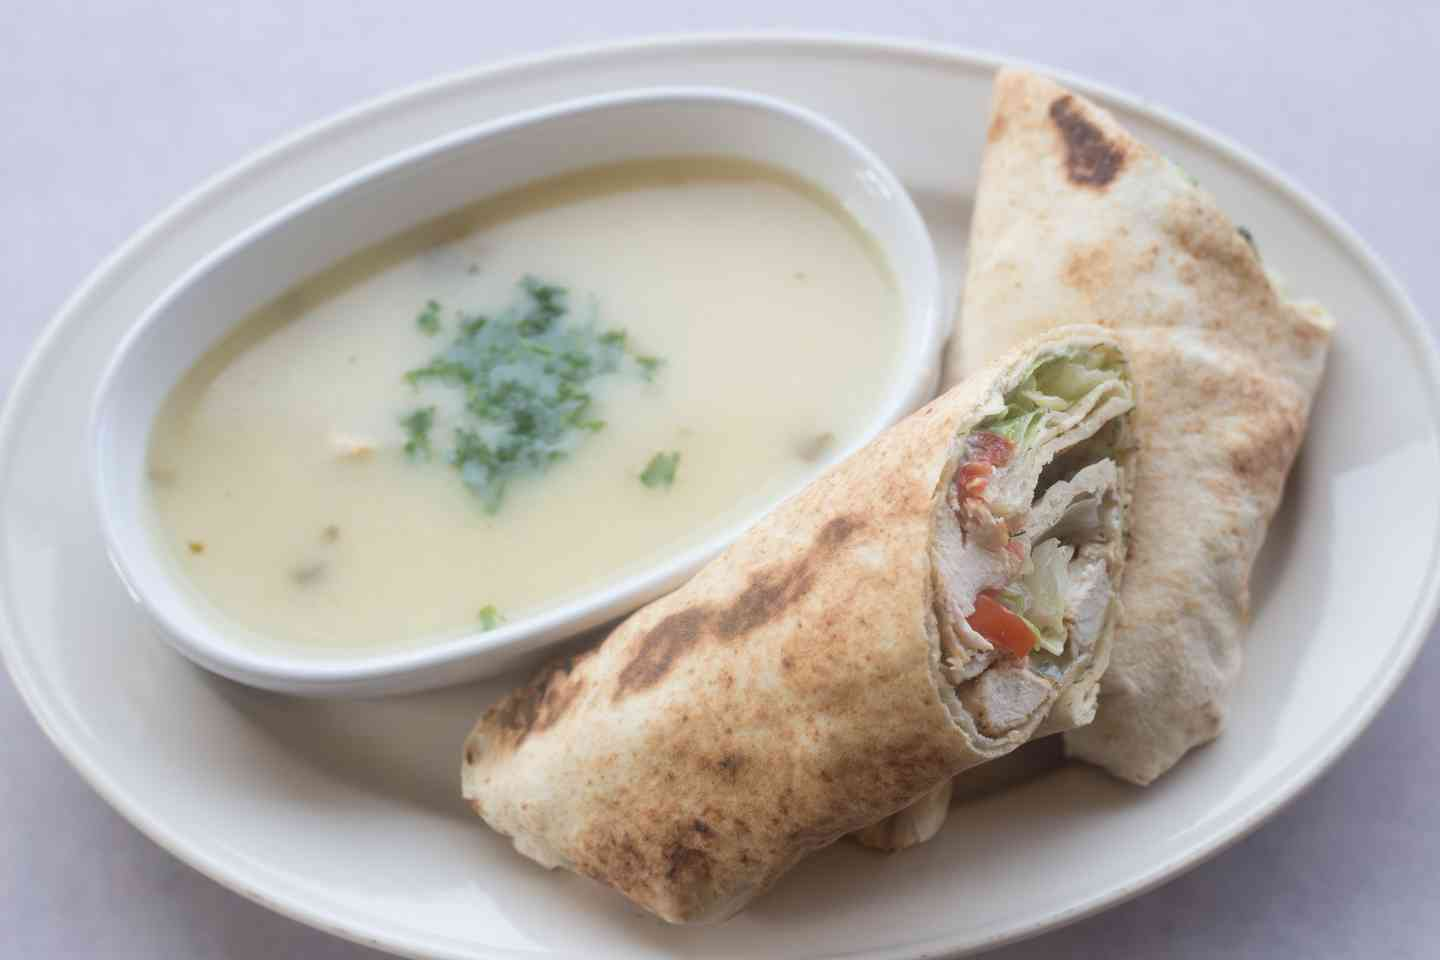 Soup and Wrap